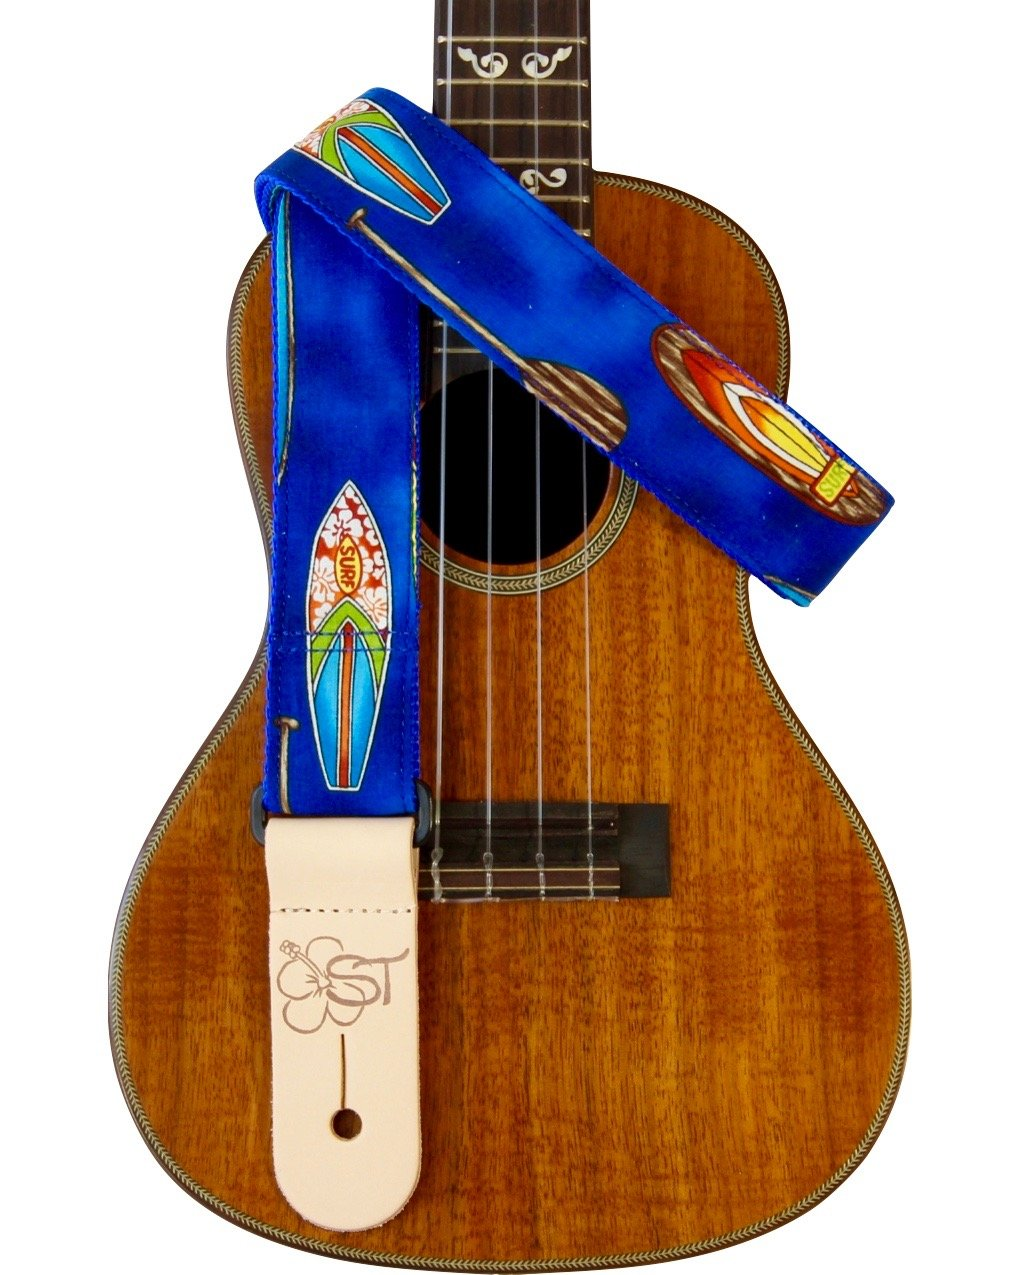 Sherrin's Threads 1.5 Hawaiian Print Ukulele Strap - Blue Surfboard